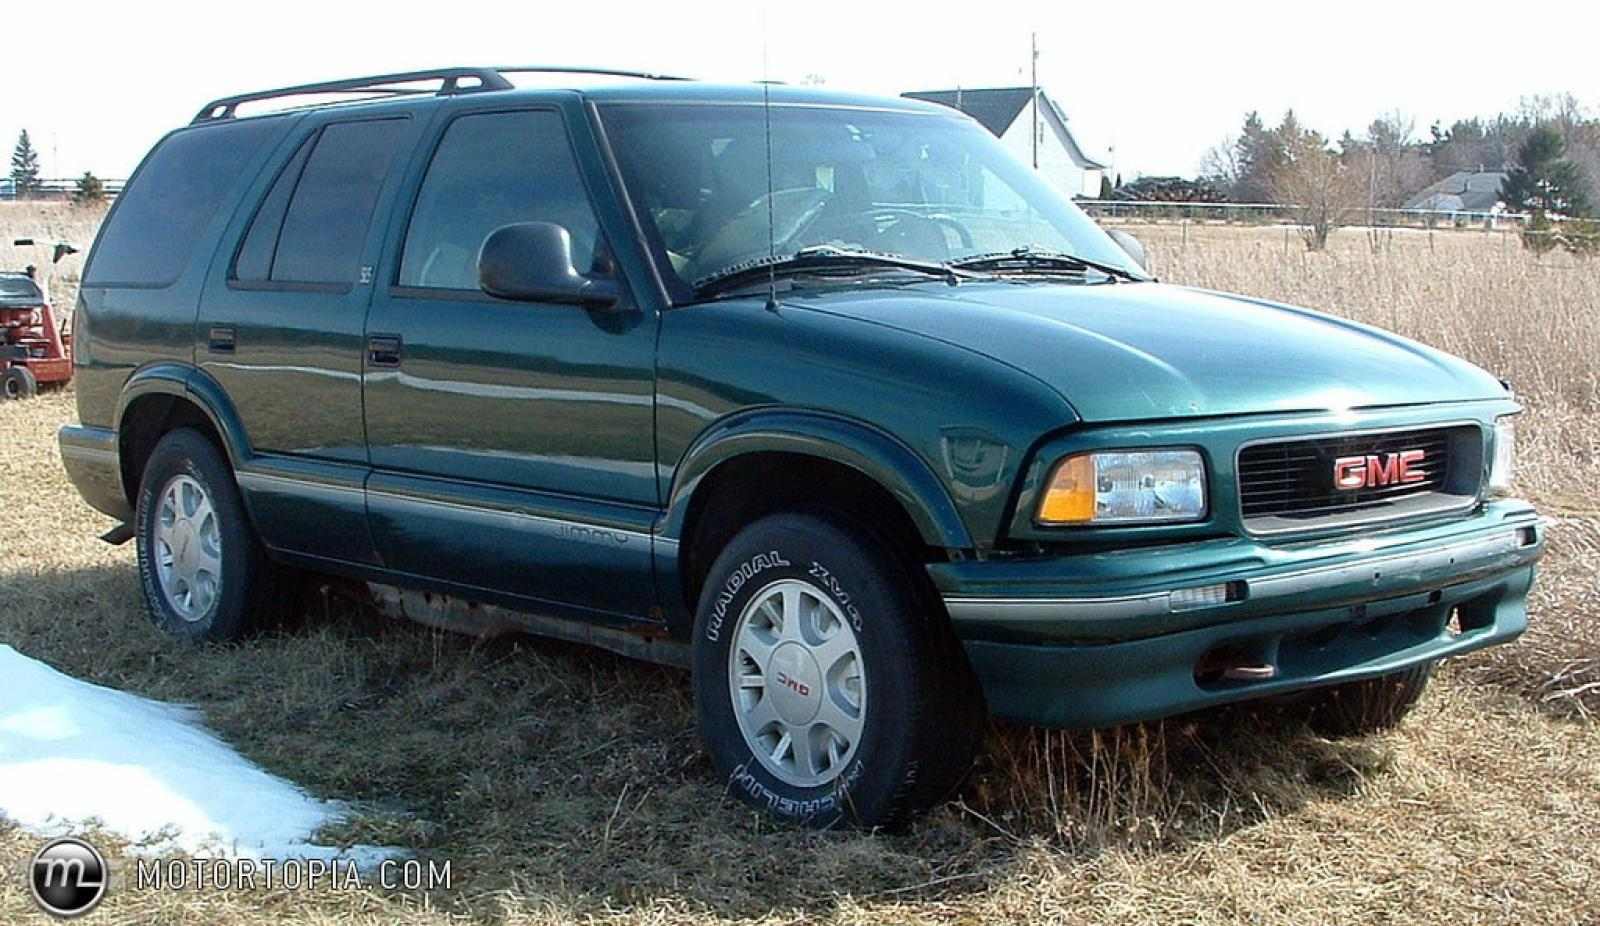 1997 Gmc Jimmy Information And Photos Zombiedrive 97 GMC Jimmy Problems 1997  Gmc Jimmy Wiring Systems